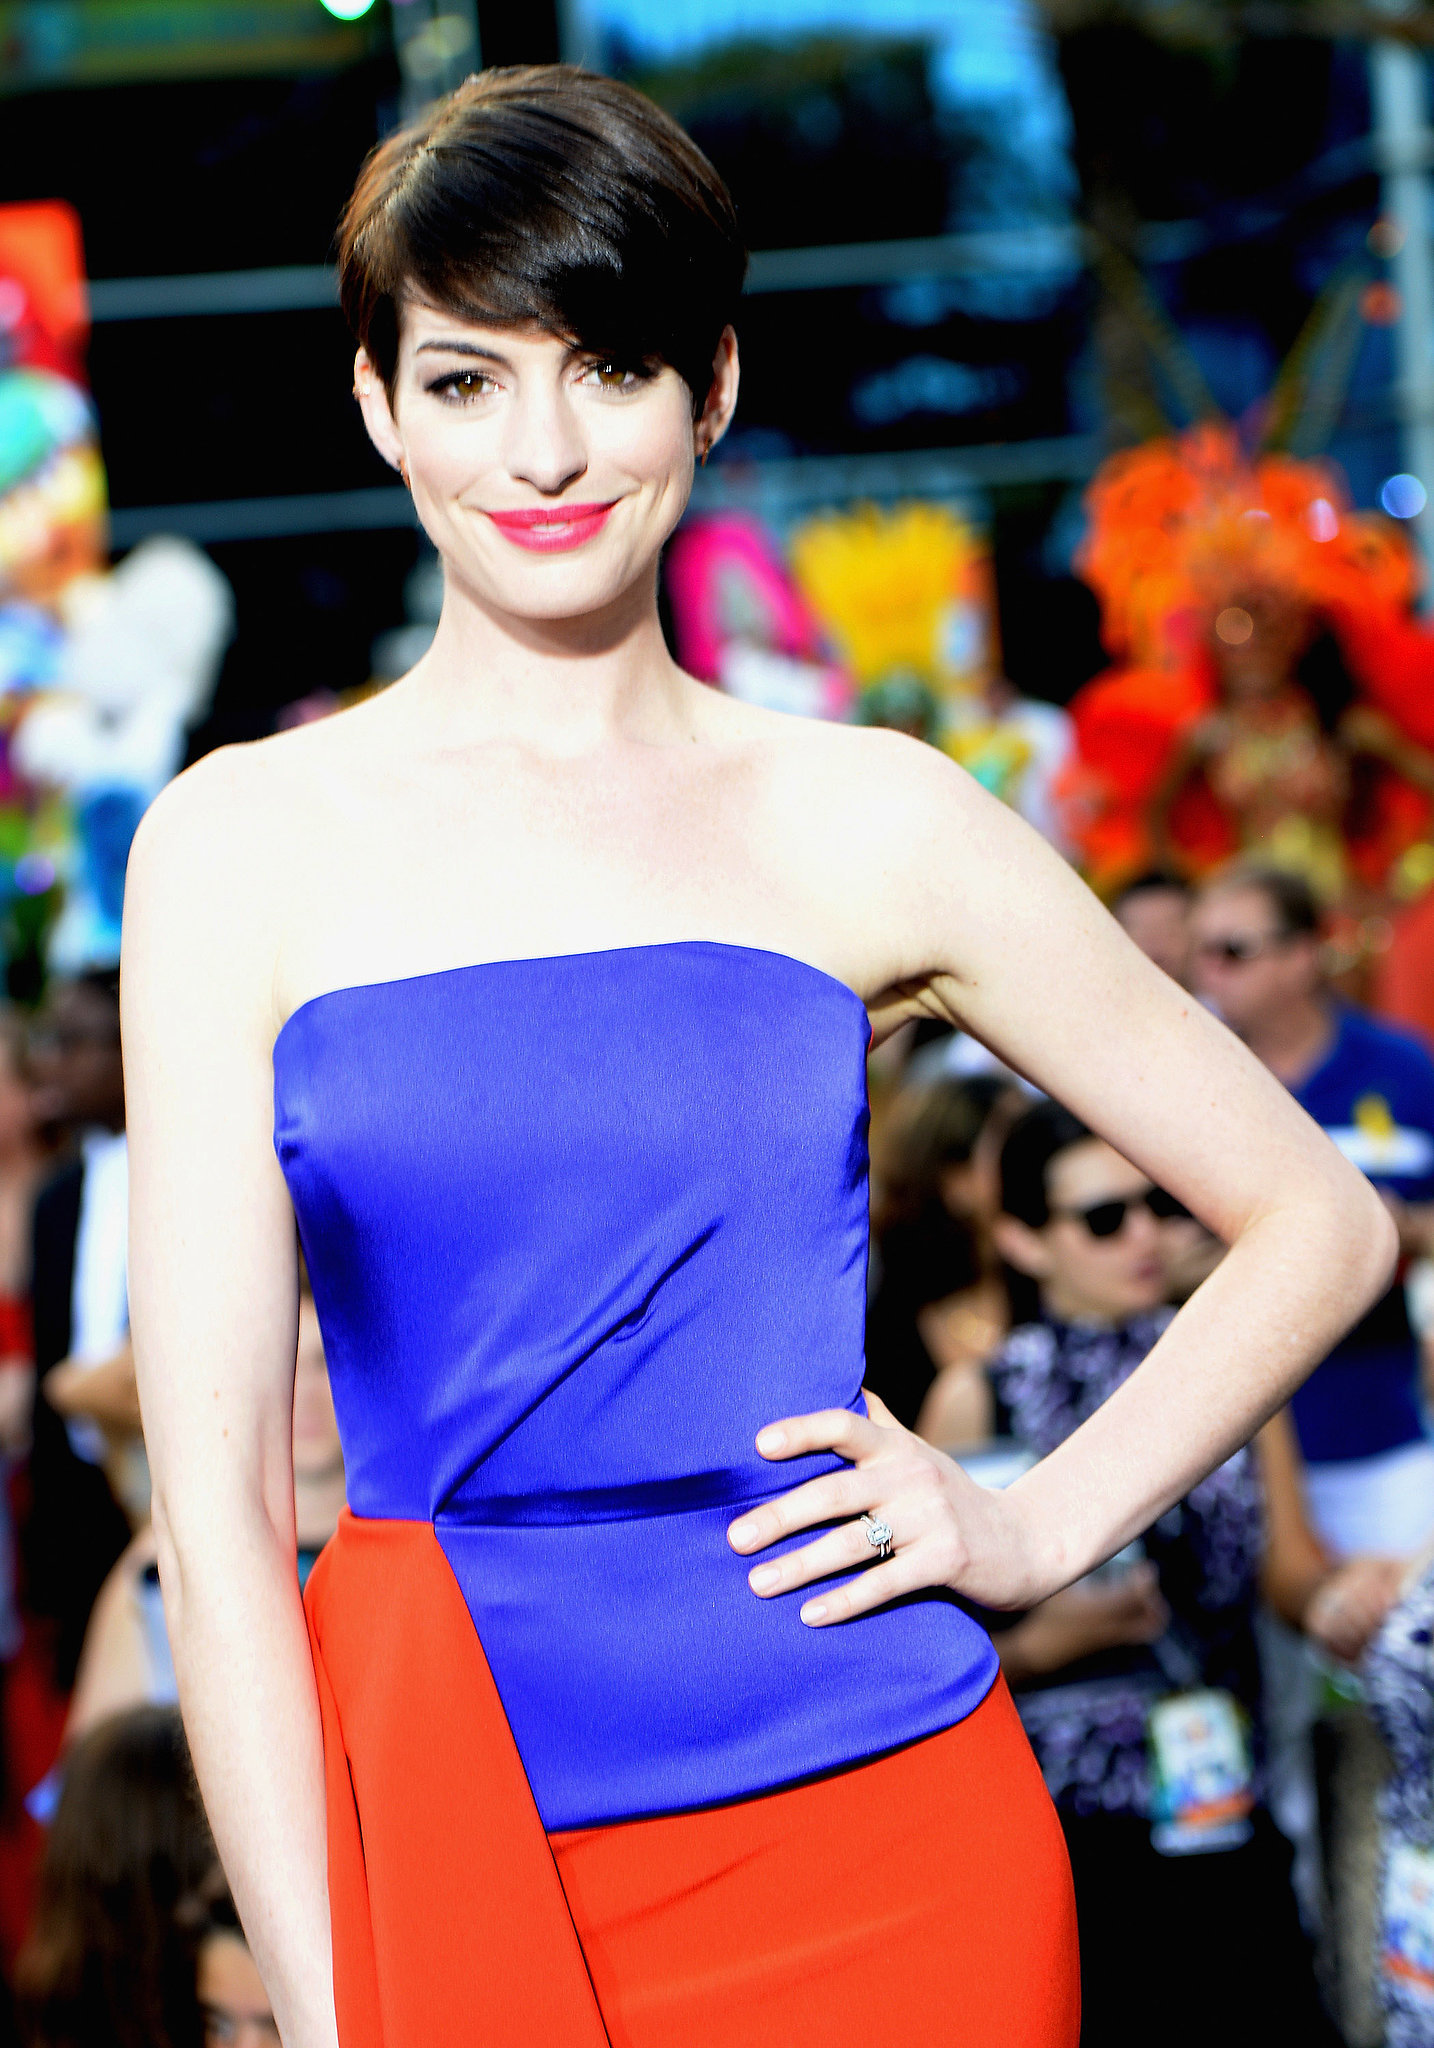 Anne Hathaway's Sleek Pixie